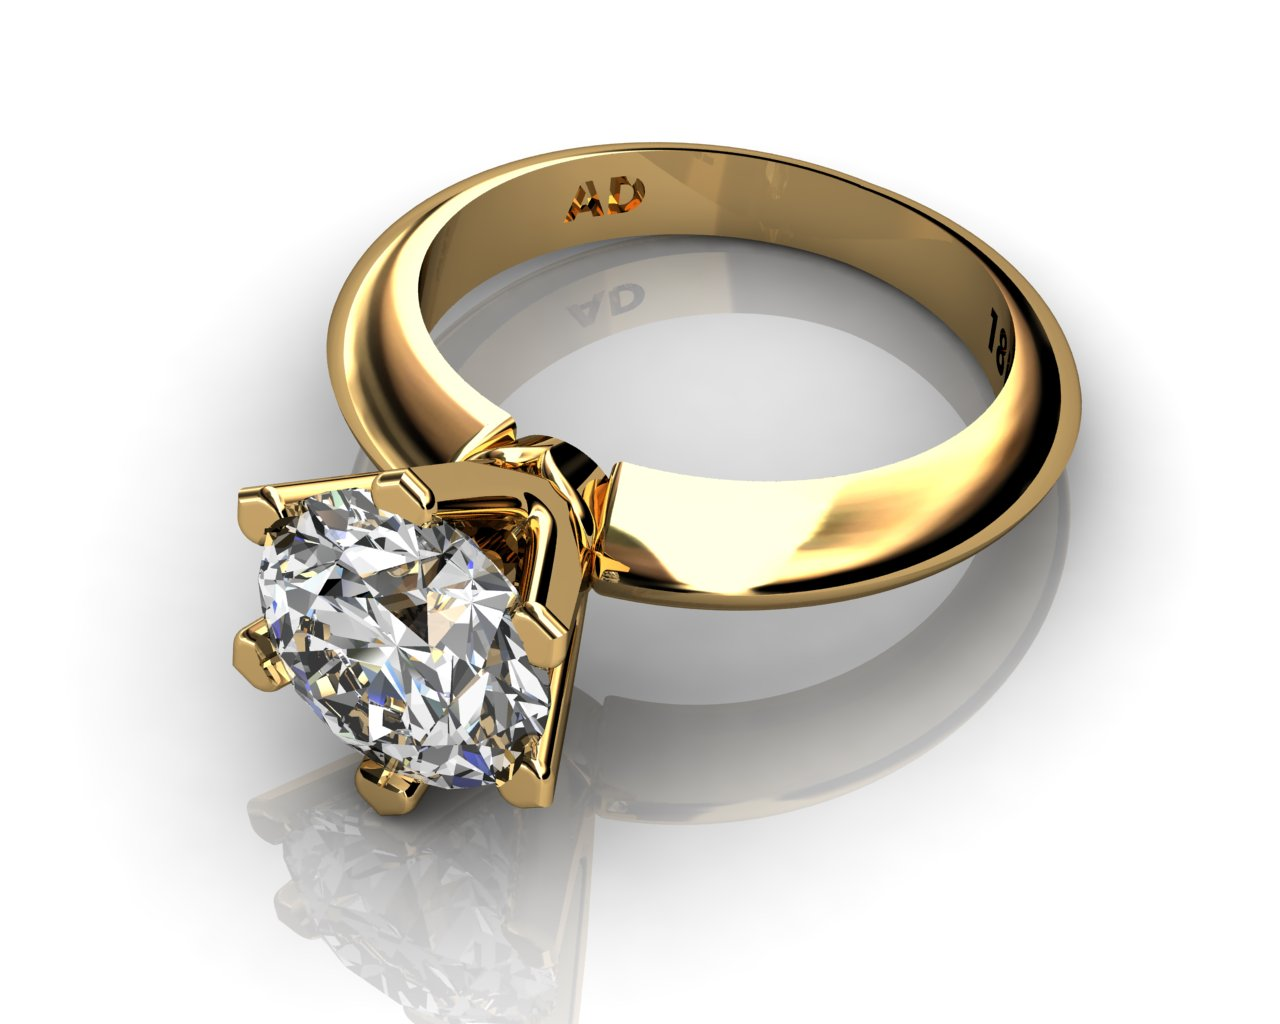 Yellow Gold Solitaire Enement Rings | Diamond Solitaire Engagement Ring Round Cut 2 50ct Diamond 6 Prongs